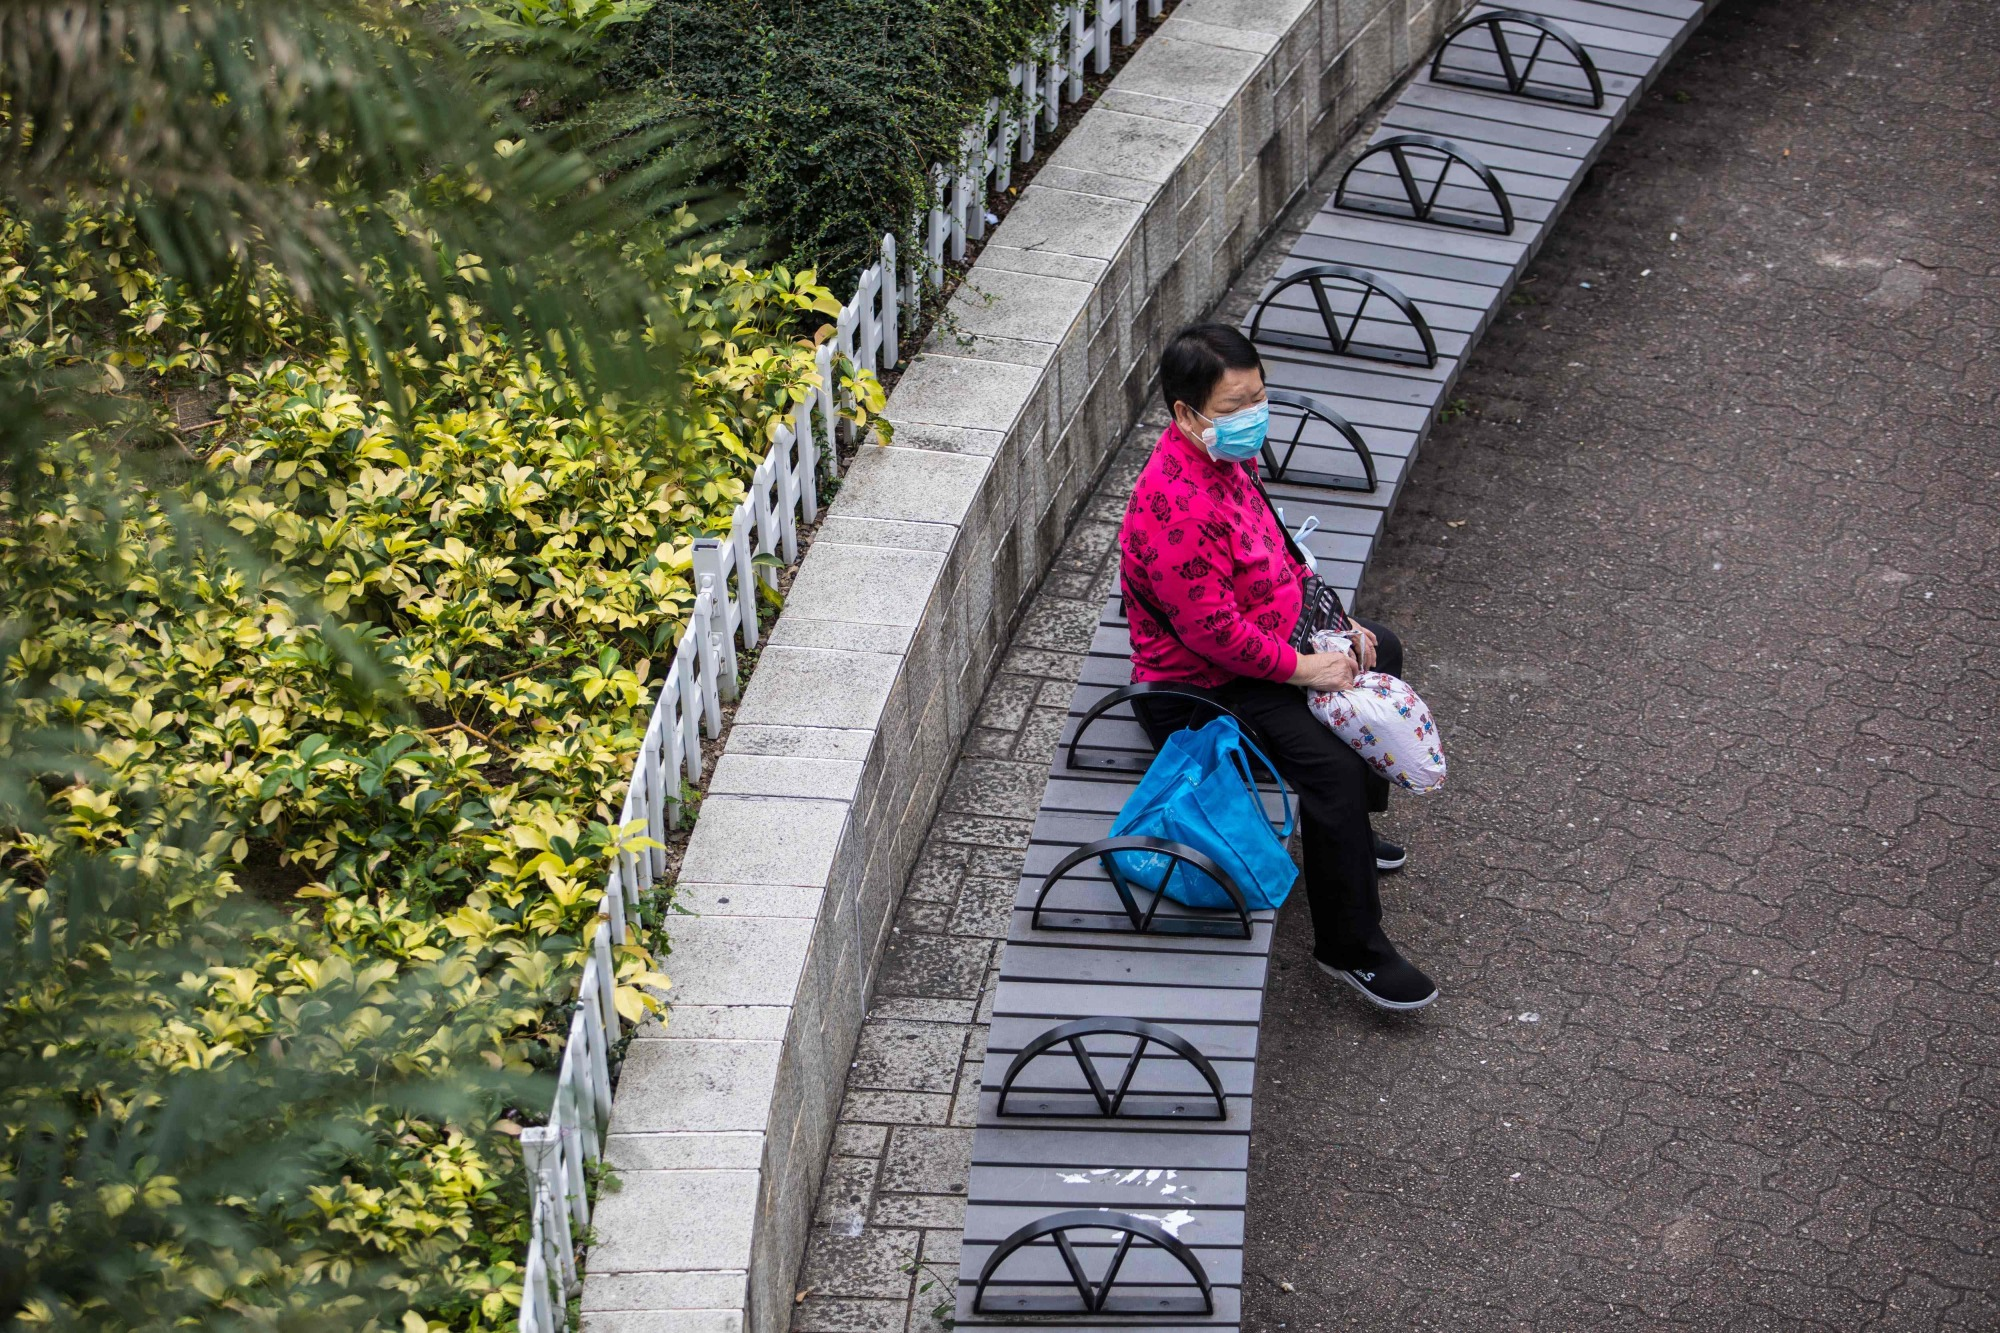 A woman wearing a protective face mask sits in a park in Hong Kong on Sunday as a preventative measure after the coronavirus outbreak that began in Wuhan, China. The previously unknown virus has caused alarm because of its similarity to SARS, the severe acute respiratory syndrome that killed hundreds across mainland China and Hong Kong from 2002 to 2003. | AFP-JIJI